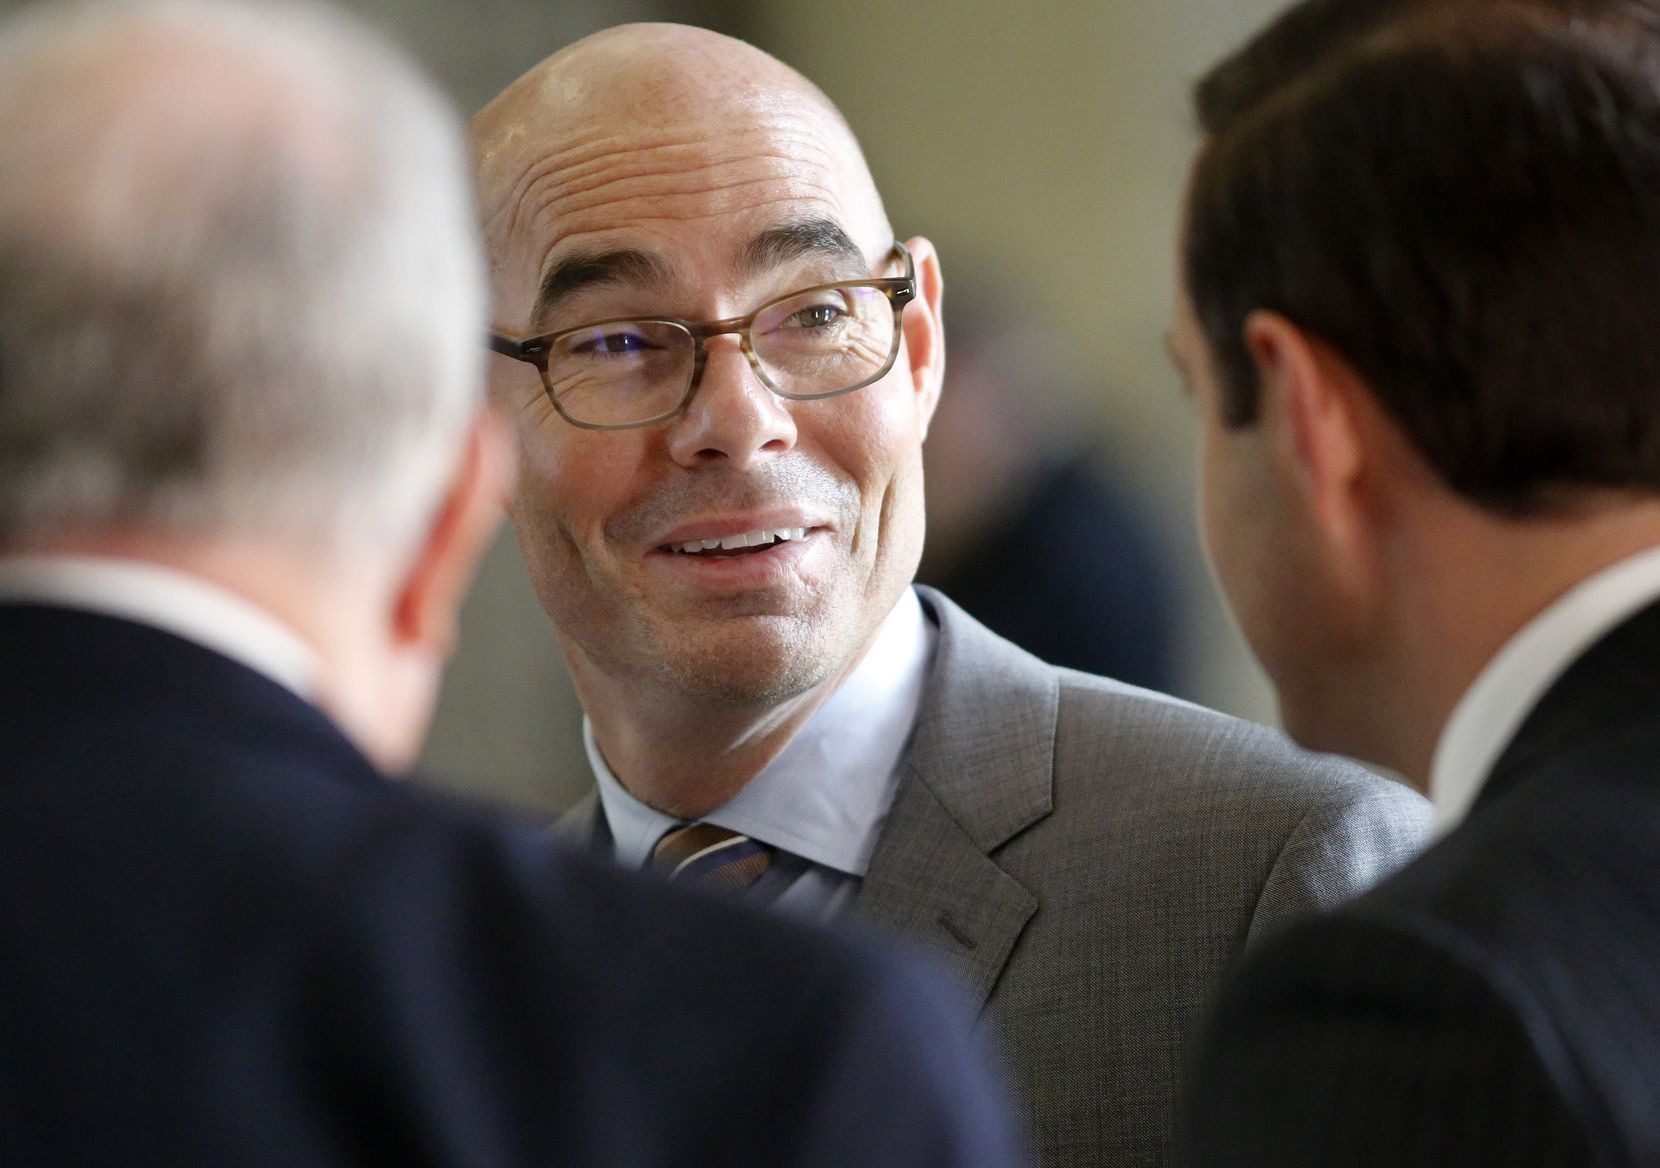 Texas Speaker of the House Honorable Dennis Bonnen (center) visits with colleagues during the 86th Legislative Session at the Texas Capitol in Austin, Texas, Wednesday, May 22, 2019. (Tom Fox/The Dallas Morning News)